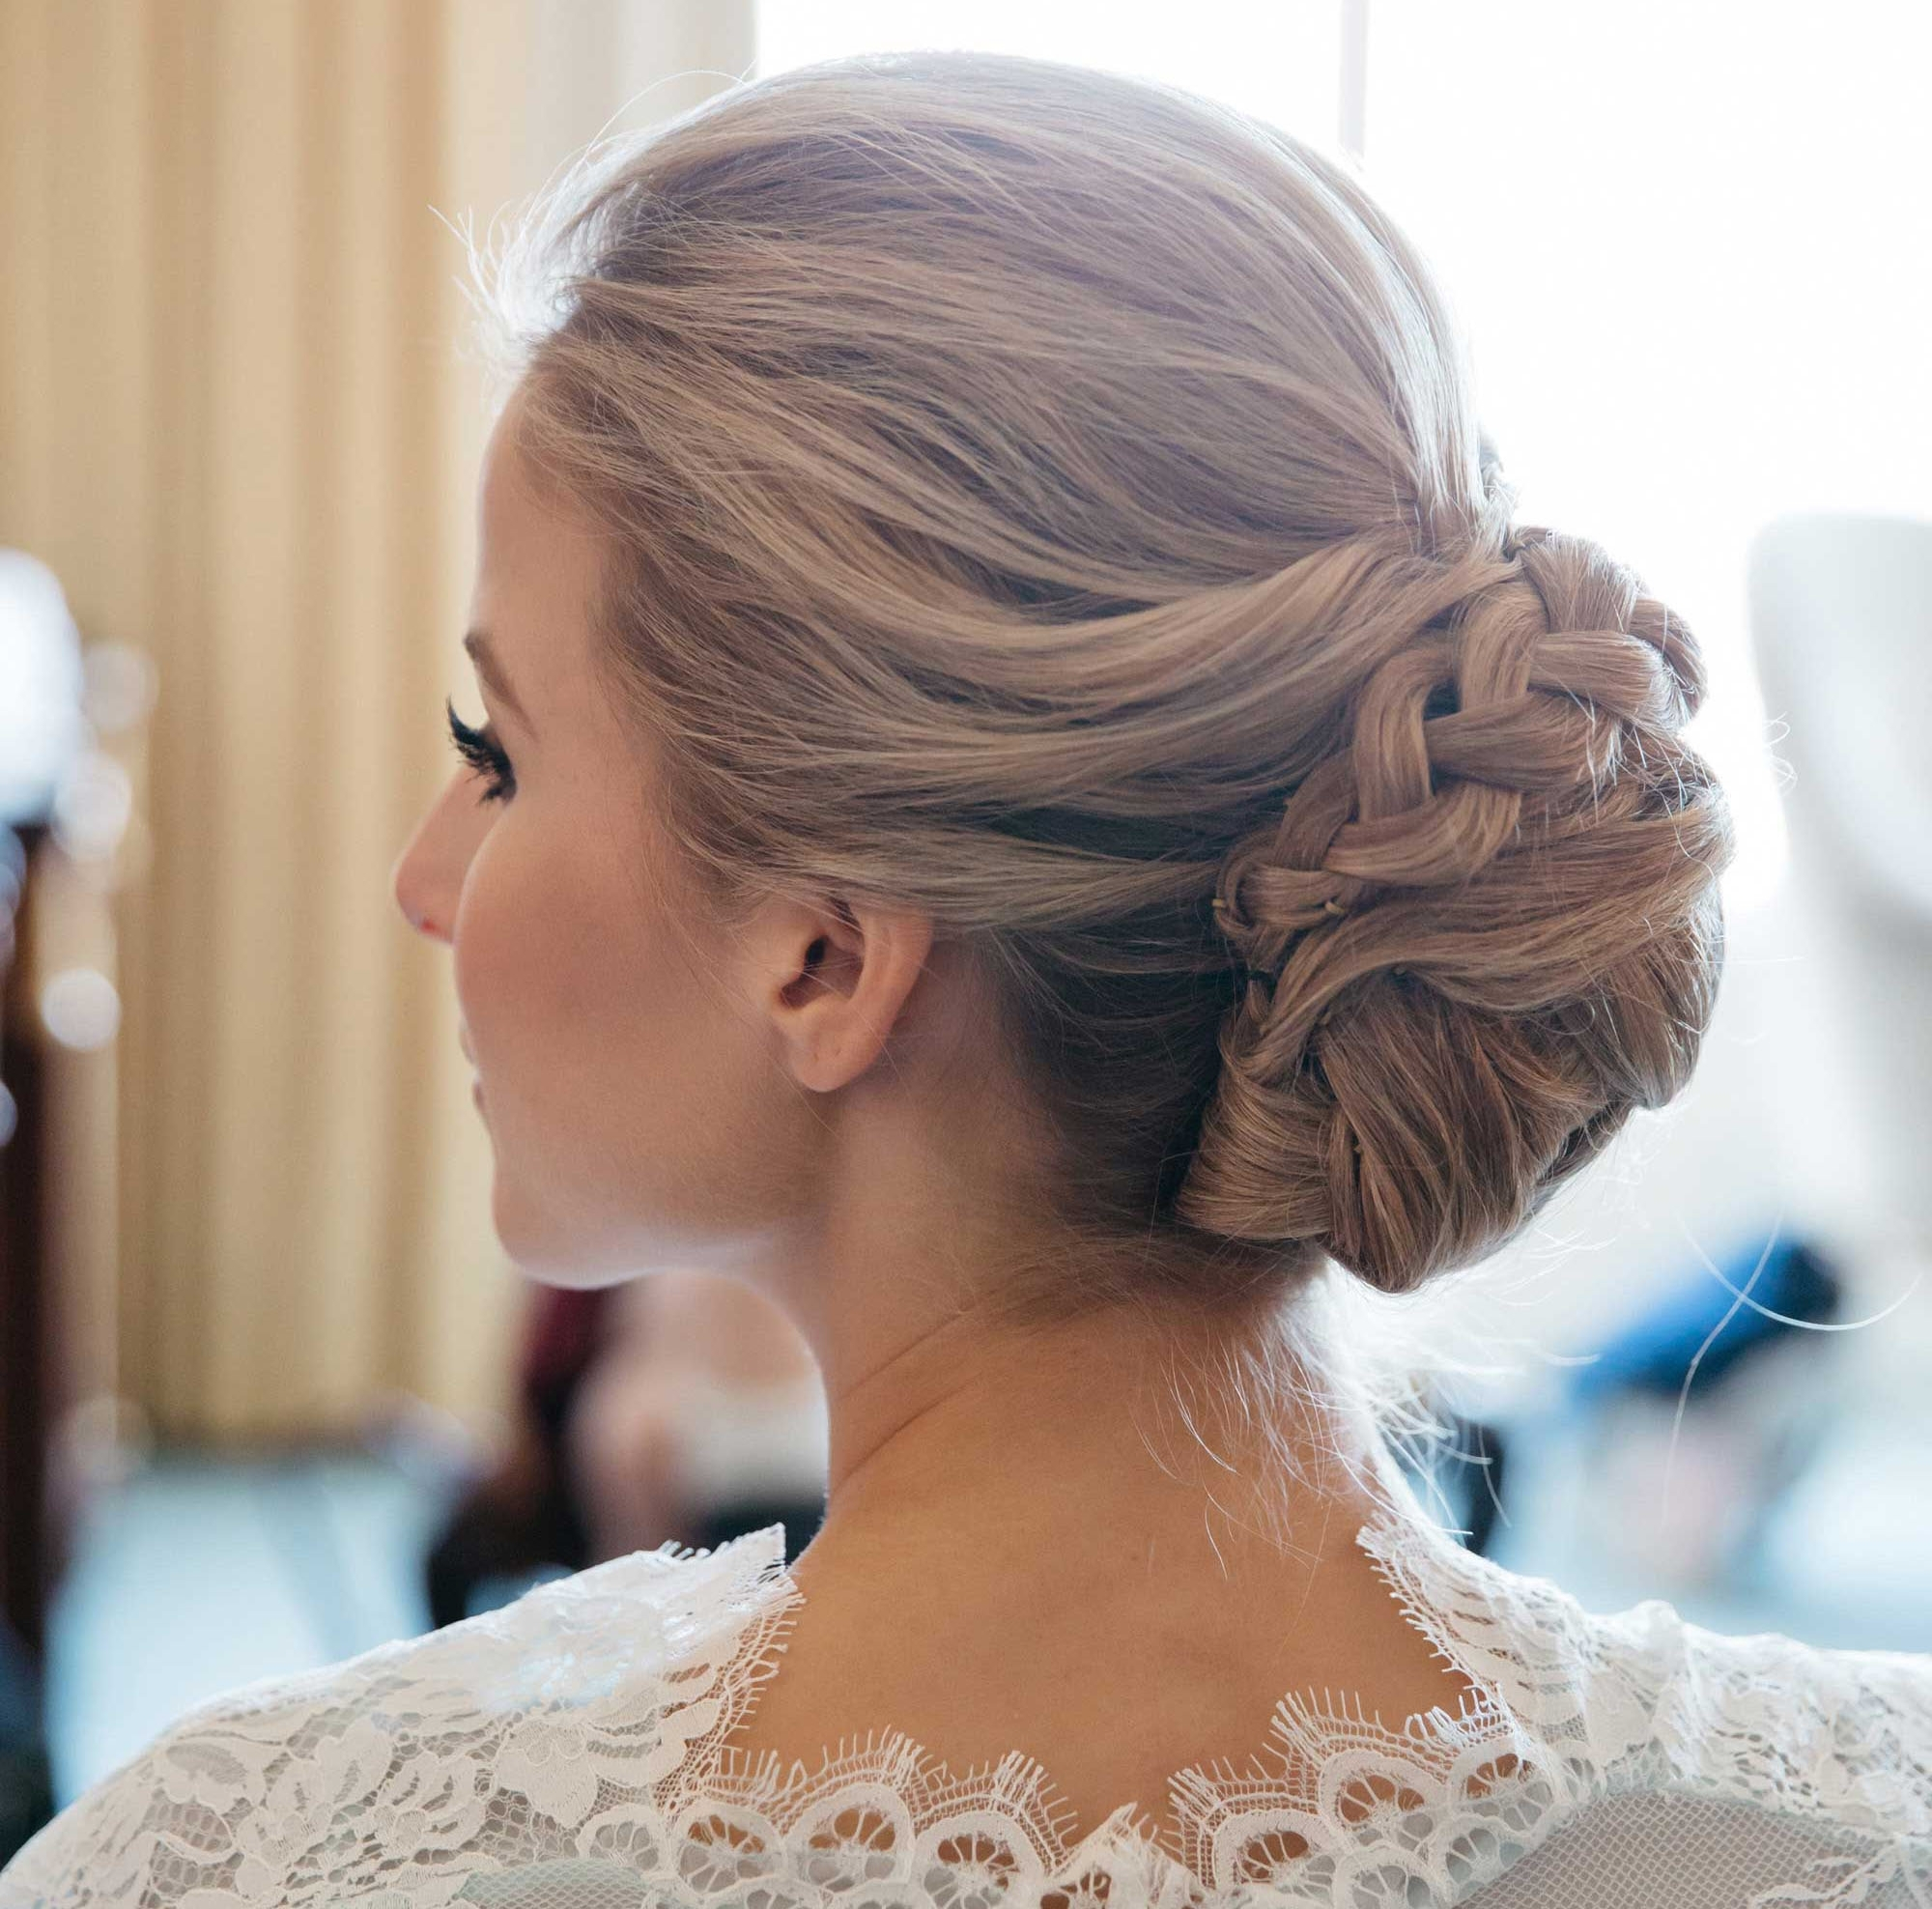 Braided Hairstyles: 5 Ideas For Your Wedding Look – Inside Weddings Inside Popular Braided Hairstyles For Bridesmaid (View 5 of 15)